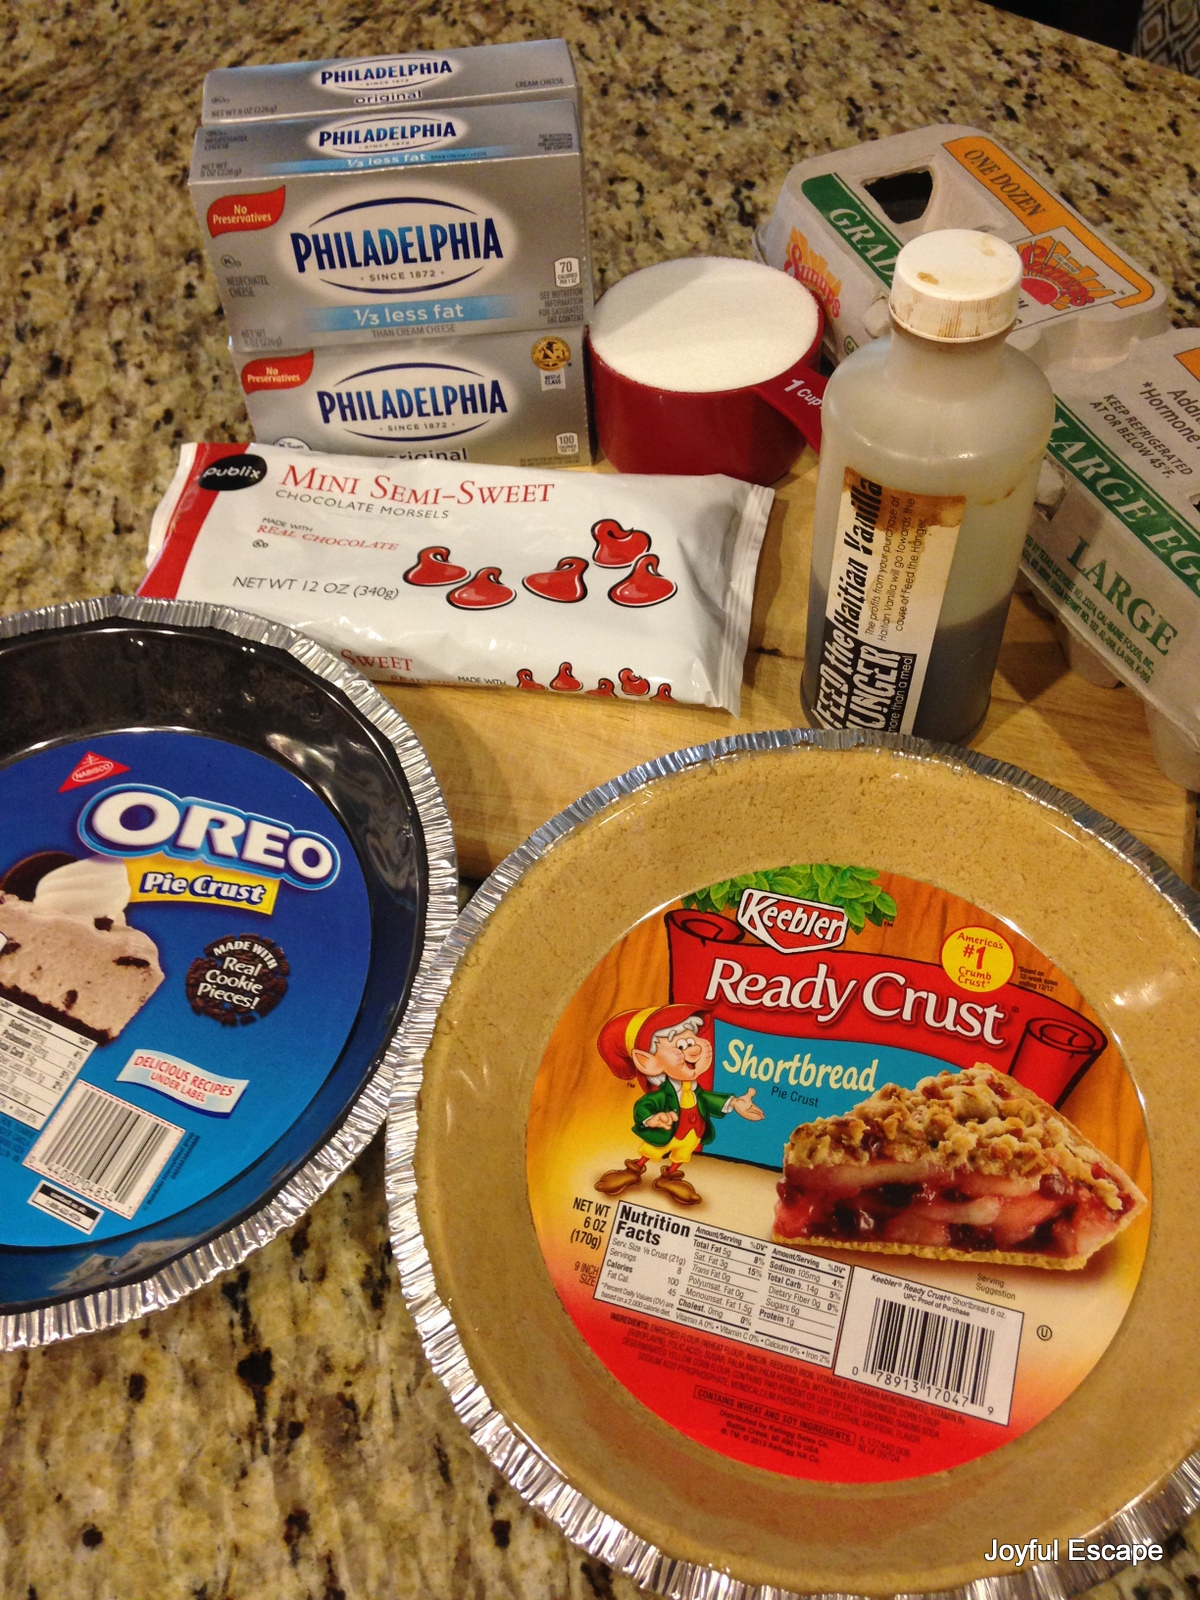 Ingredients for Chocolate Chip Cheesecake